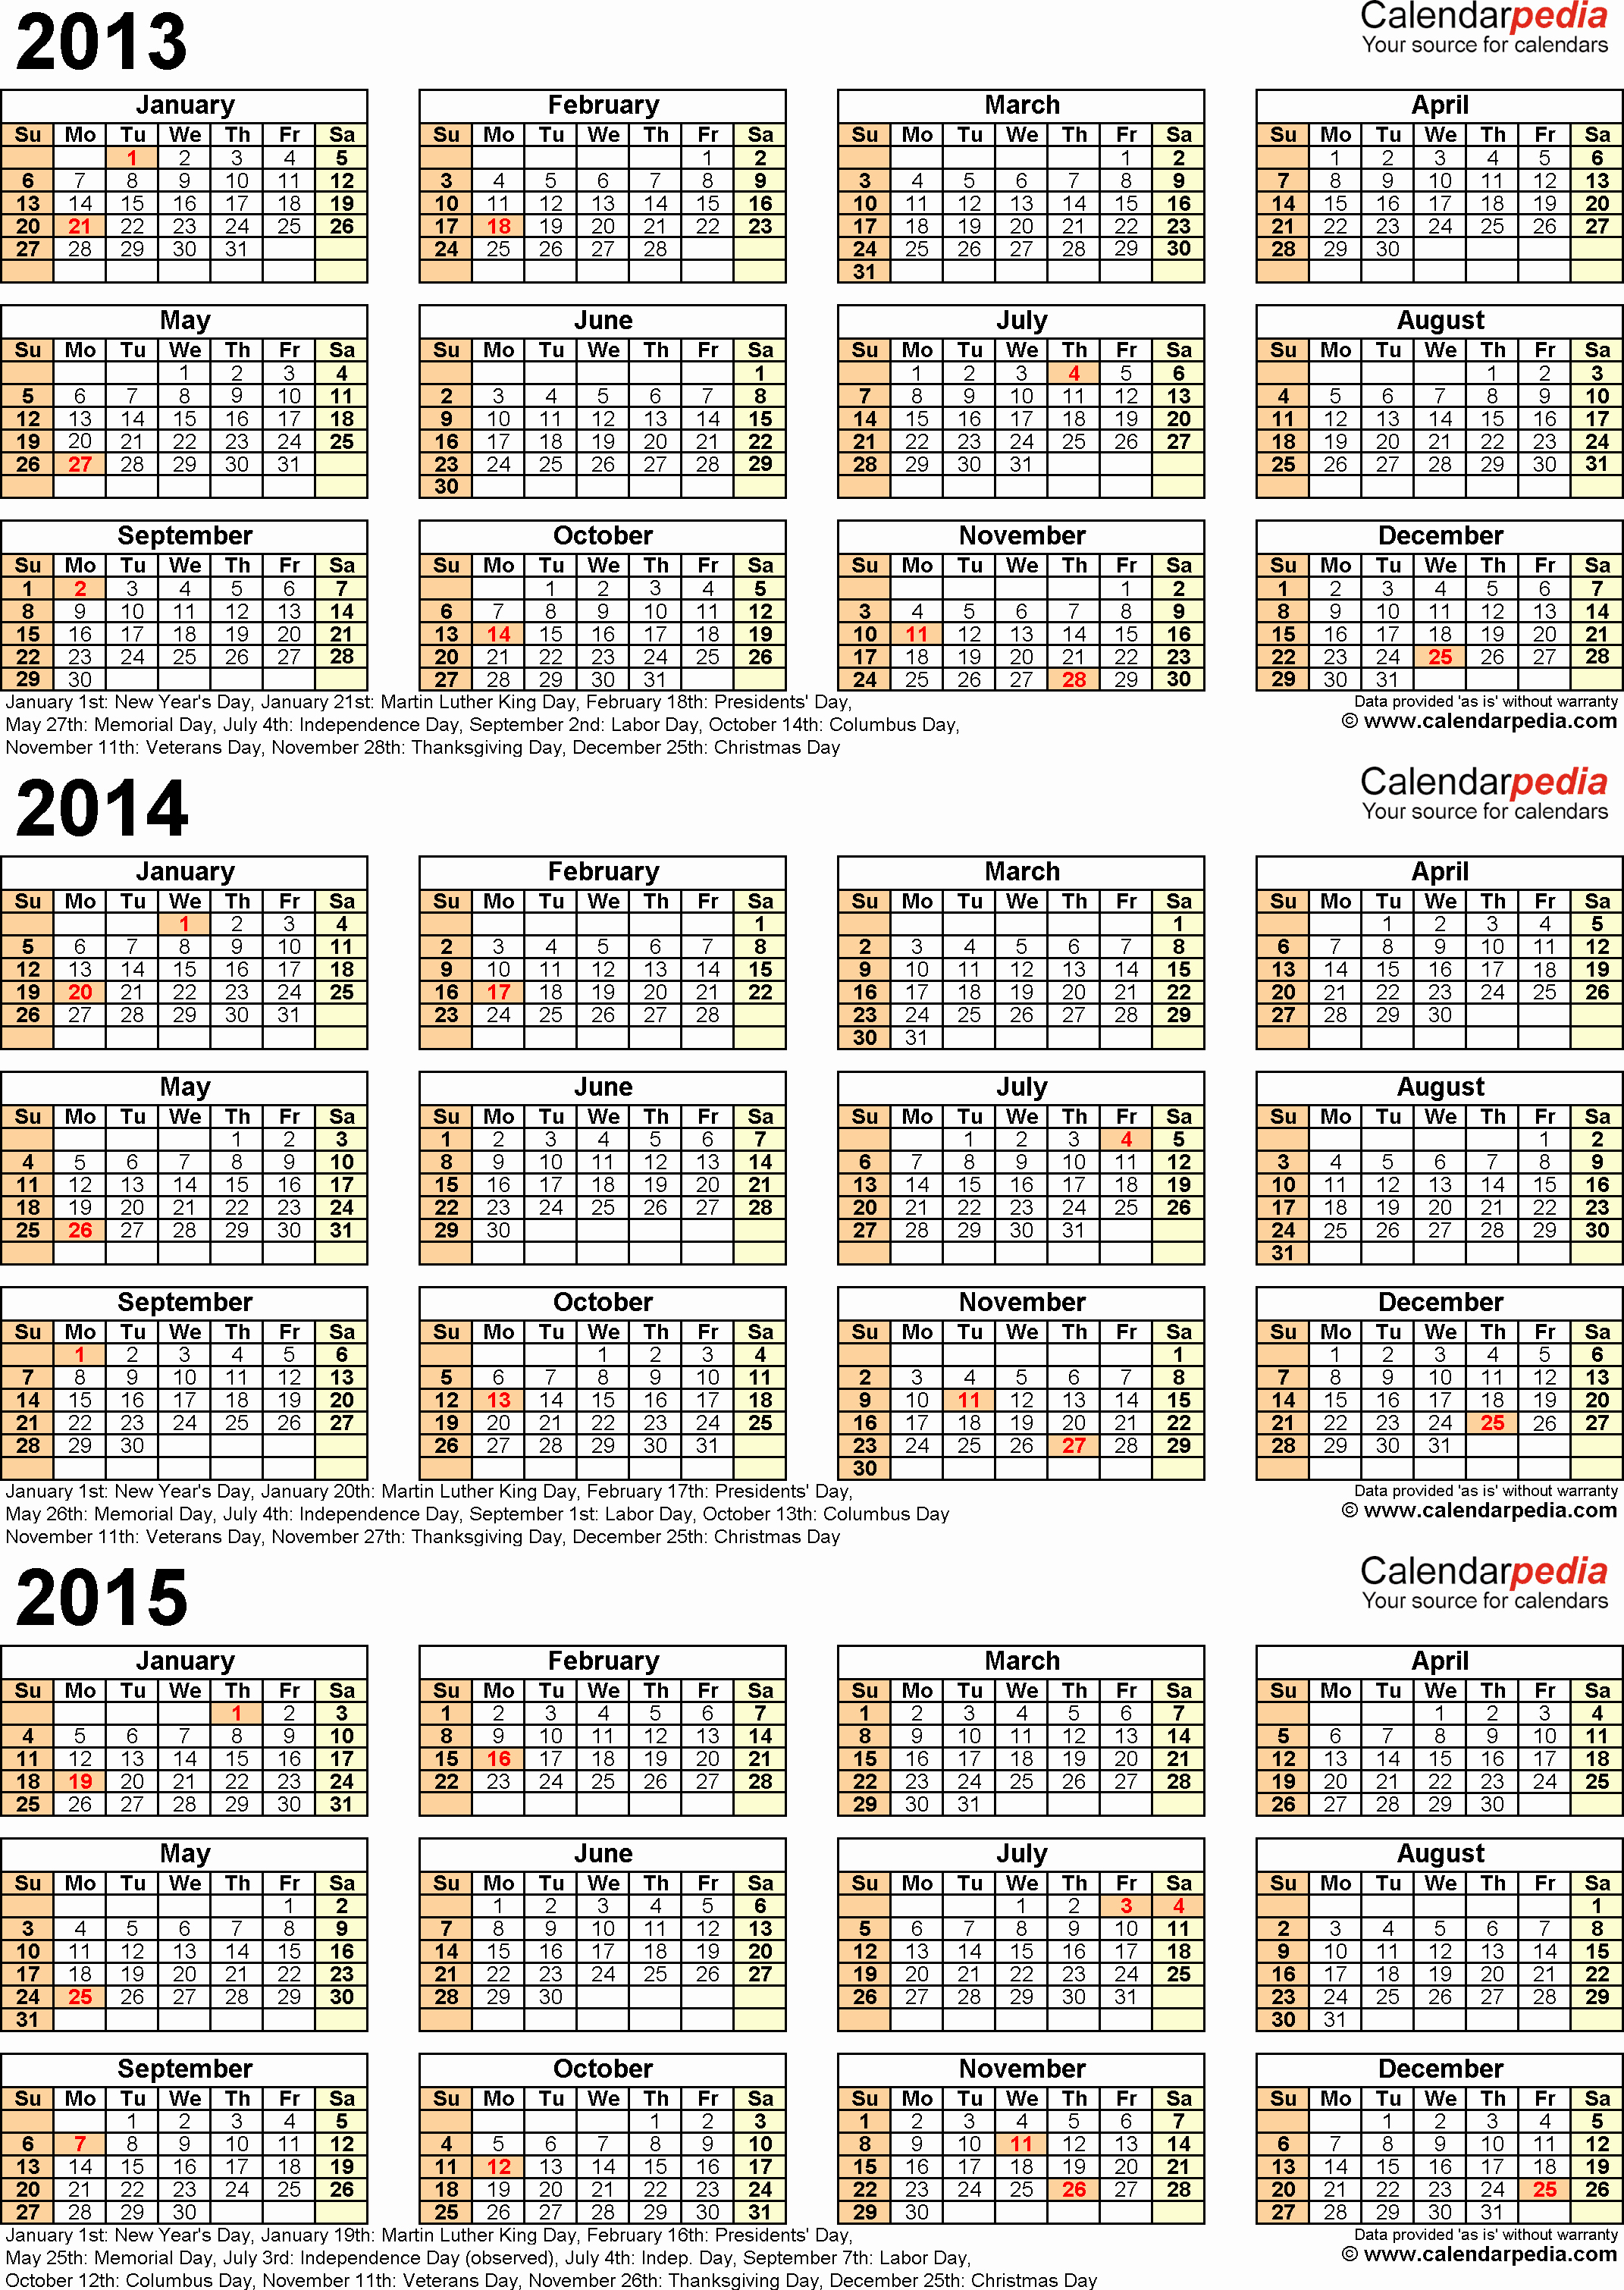 Free Yearly Calendar Templates 2015 Unique 2013 2014 2015 Calendar 2 Three Year Printable Pdf Calendars